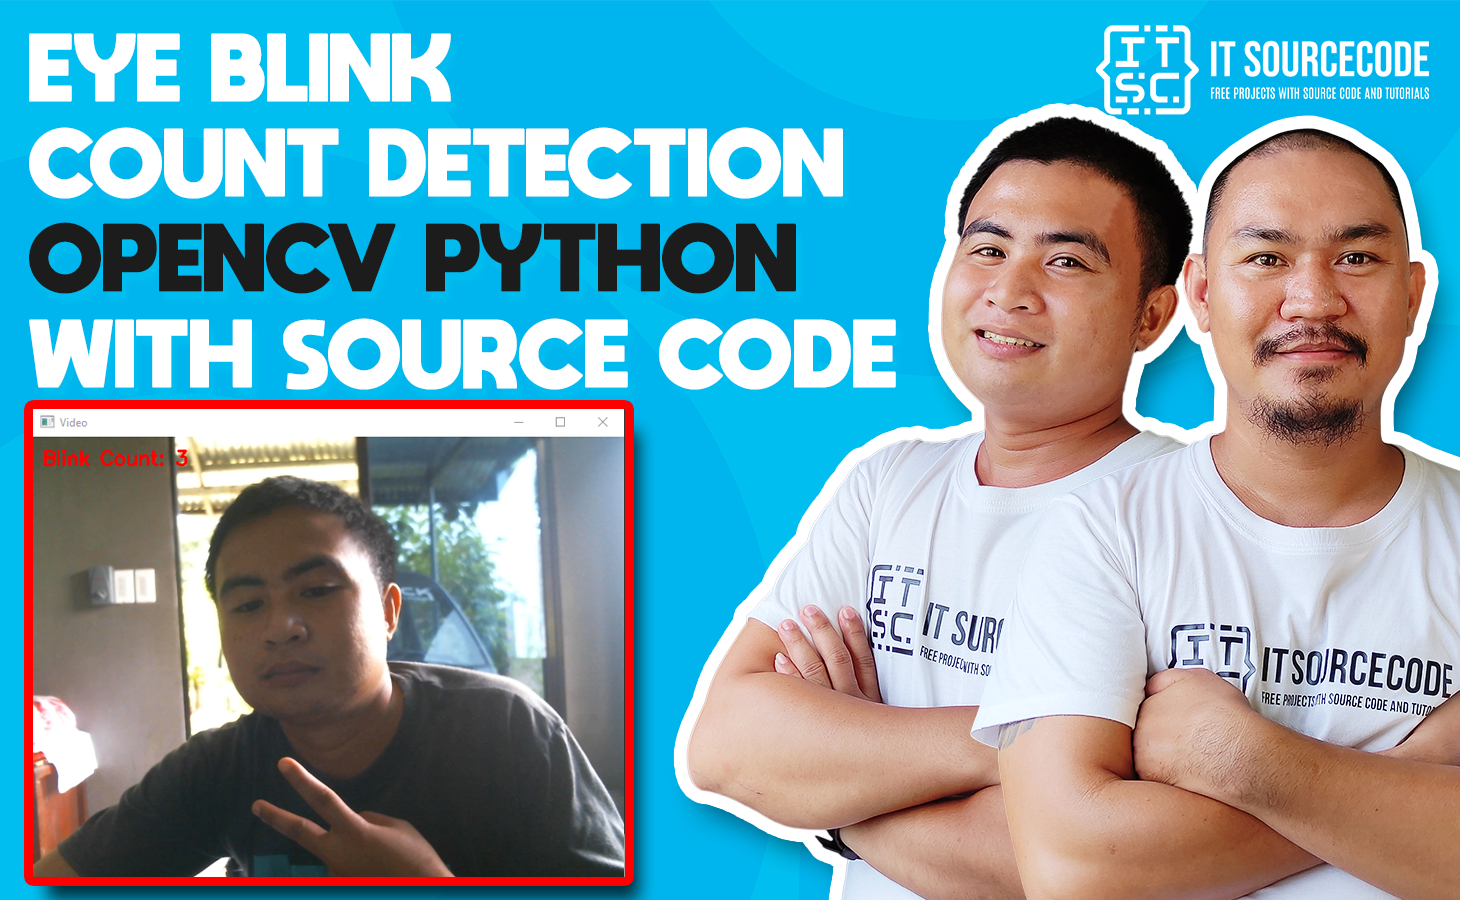 Eye Blink Counting Detection OpenCV Python With Source Code